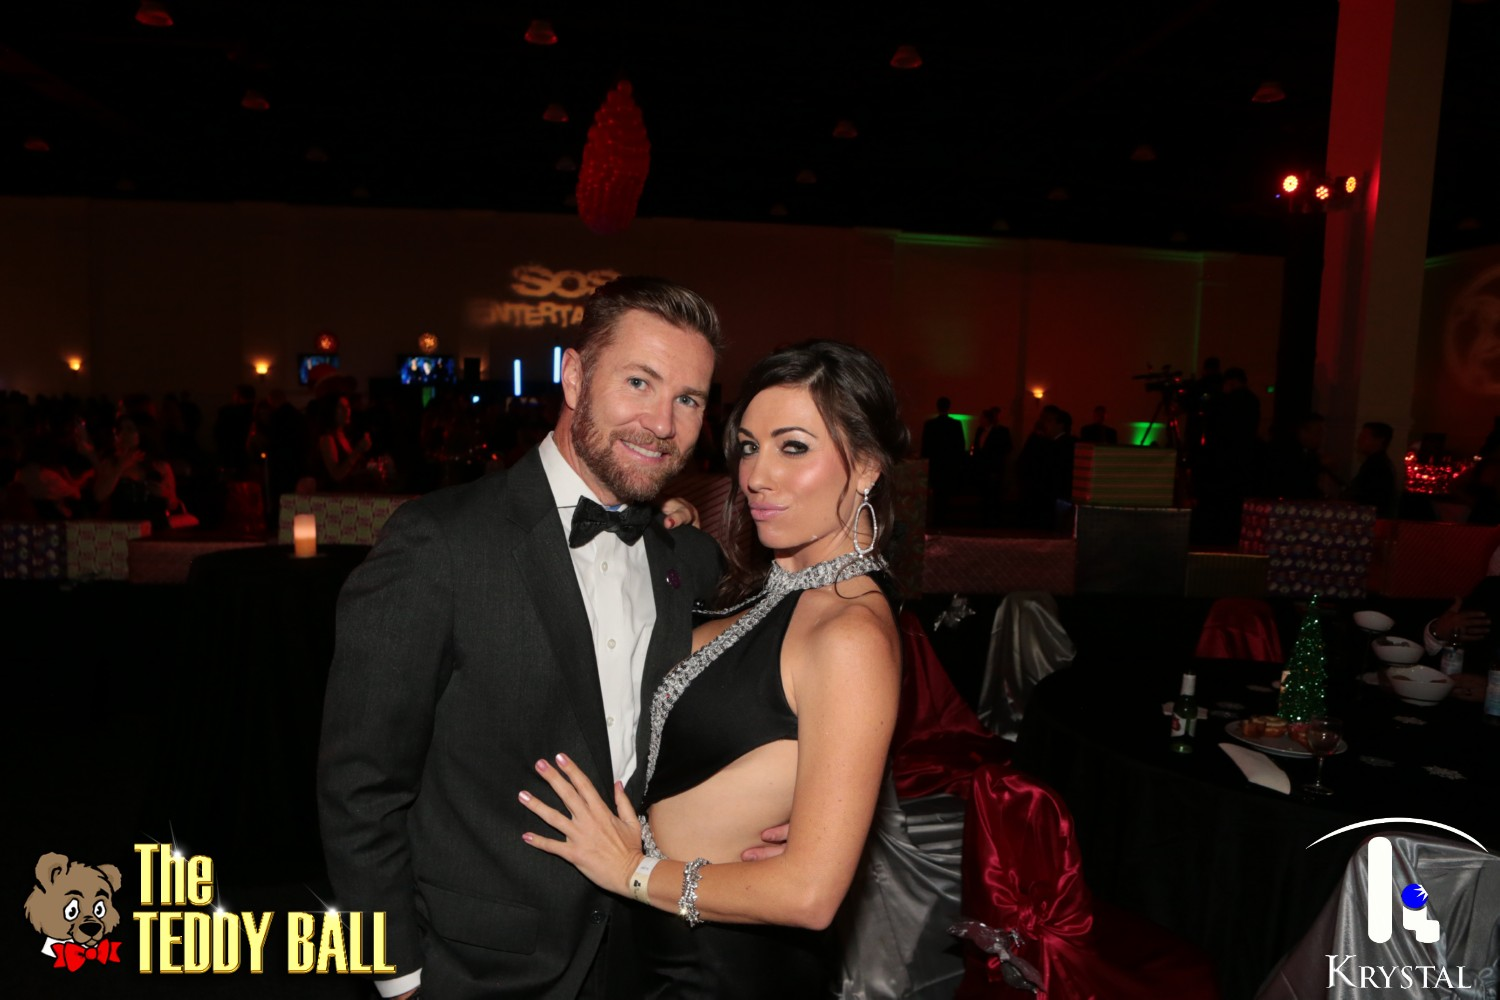 Teddy-Ball-2017-Krystal-Productions-P2-614.jpg